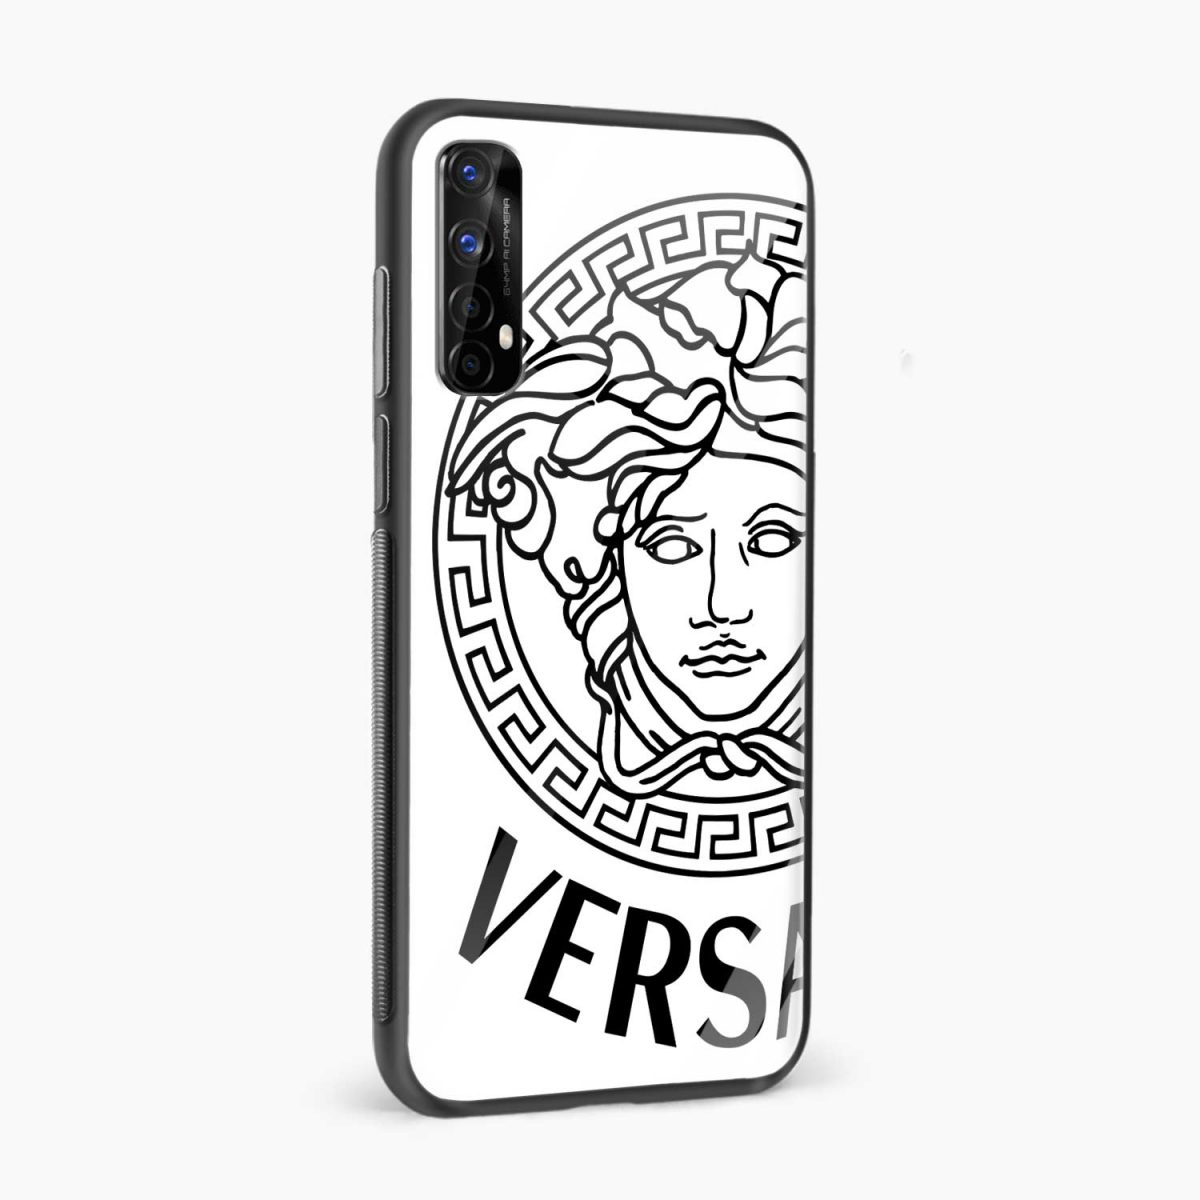 versace black white side view realme 7 back cover